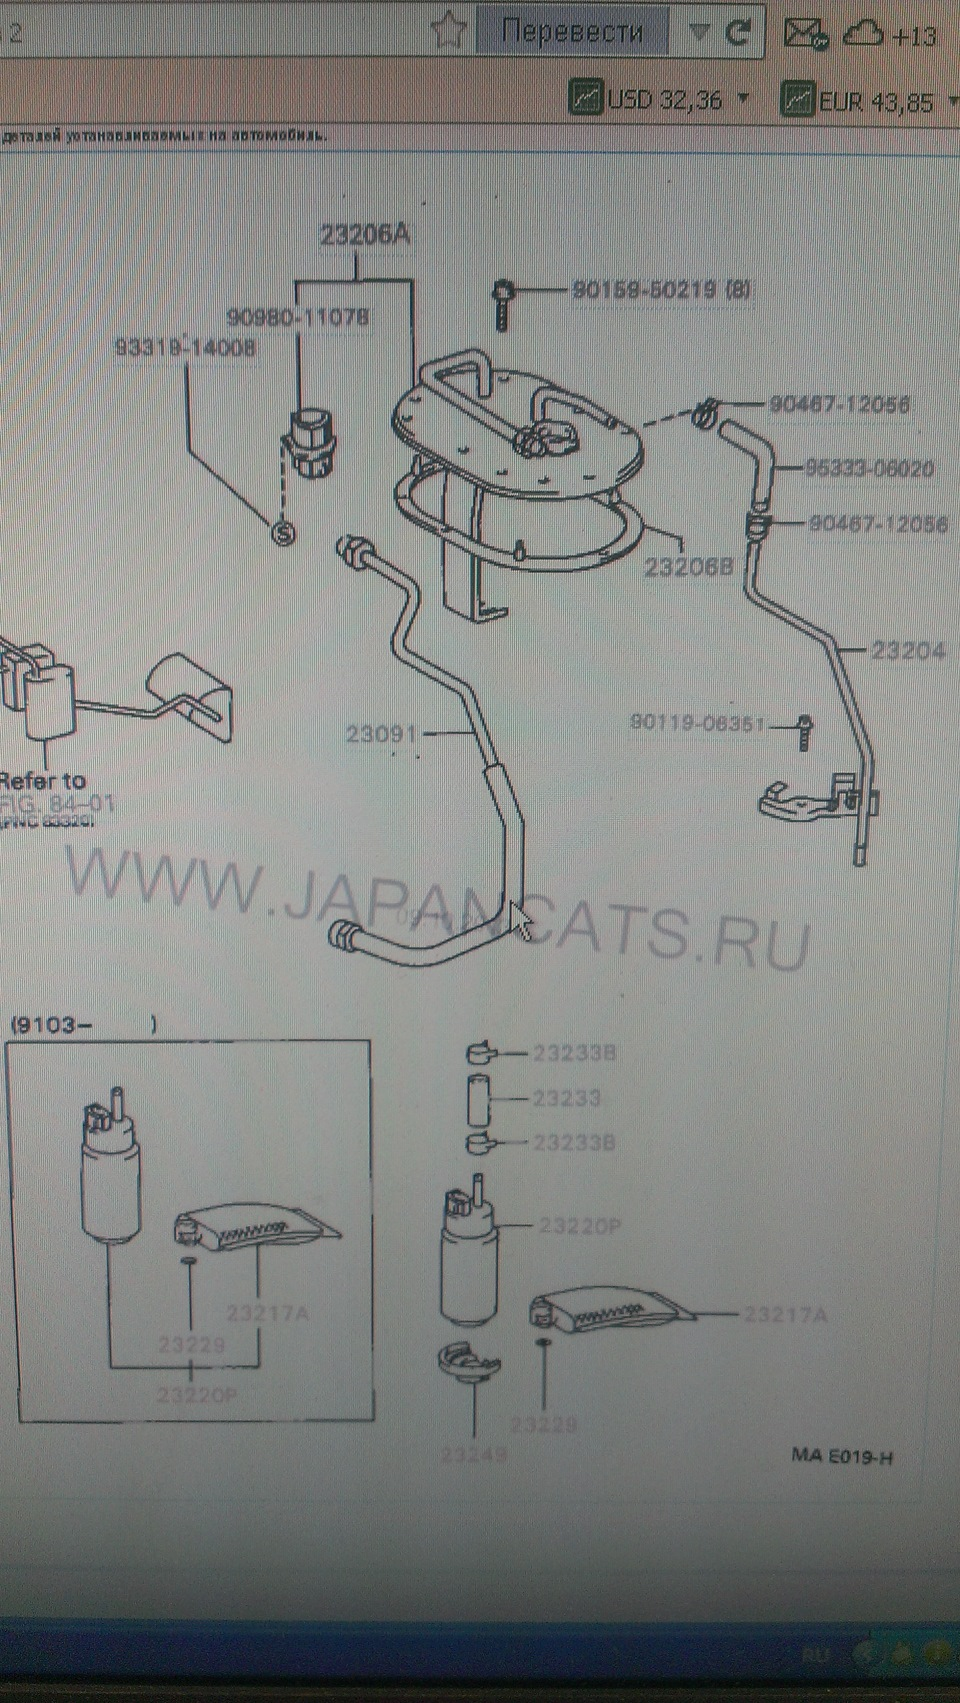 the fuel filter for rough cleaning no  23217-74020 2  a lining of an arm of  fastening of the fuel pump № 77169-60010